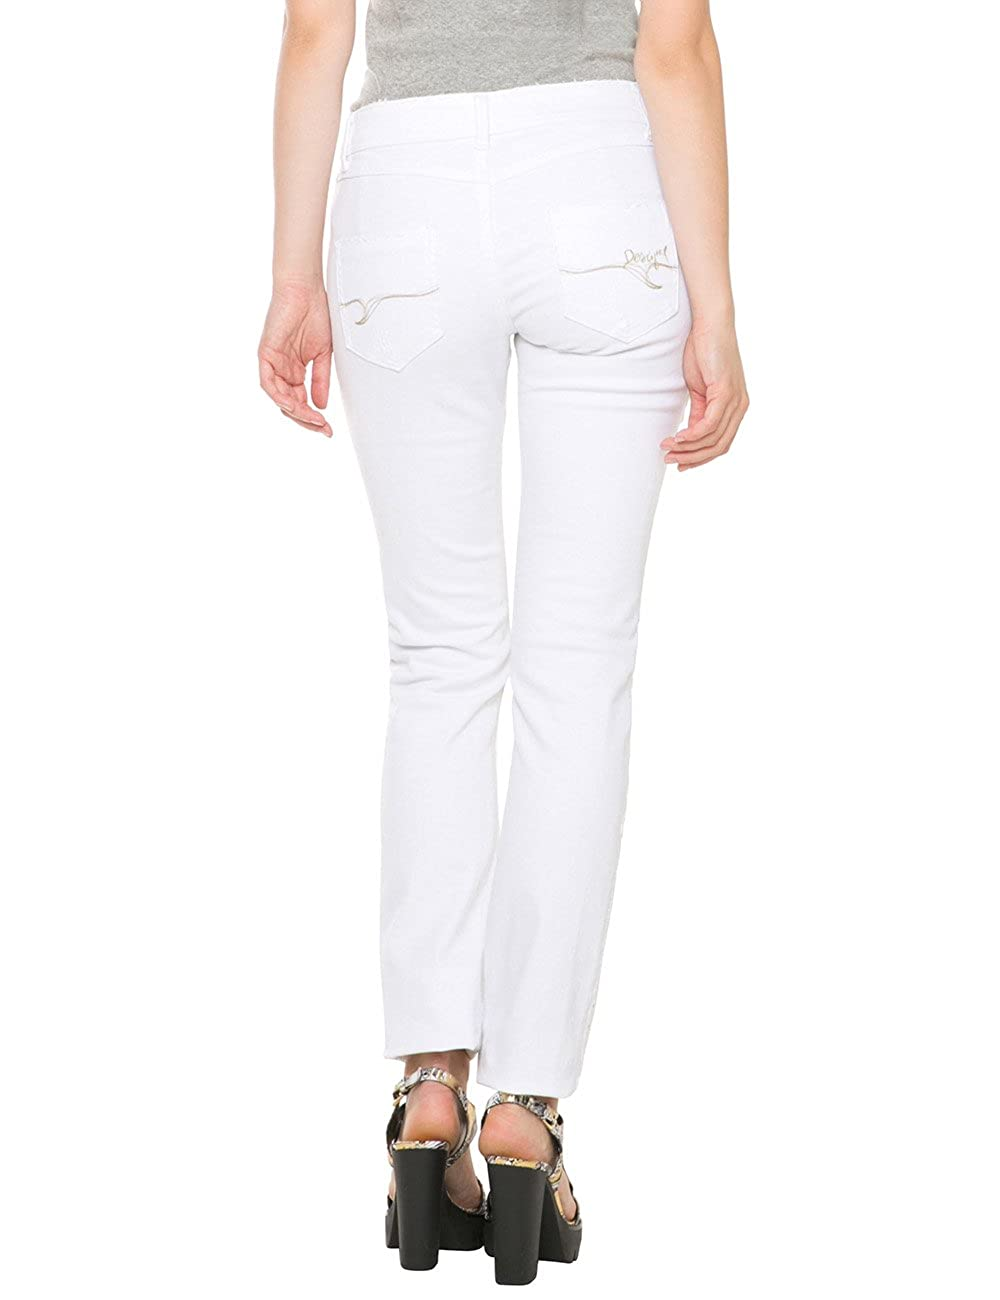 Womens Denim_blondie White Jeans Desigual Cheap Sale Find Great Super Specials Supply Get To Buy Online Inexpensive Cheap Price oDNKhD